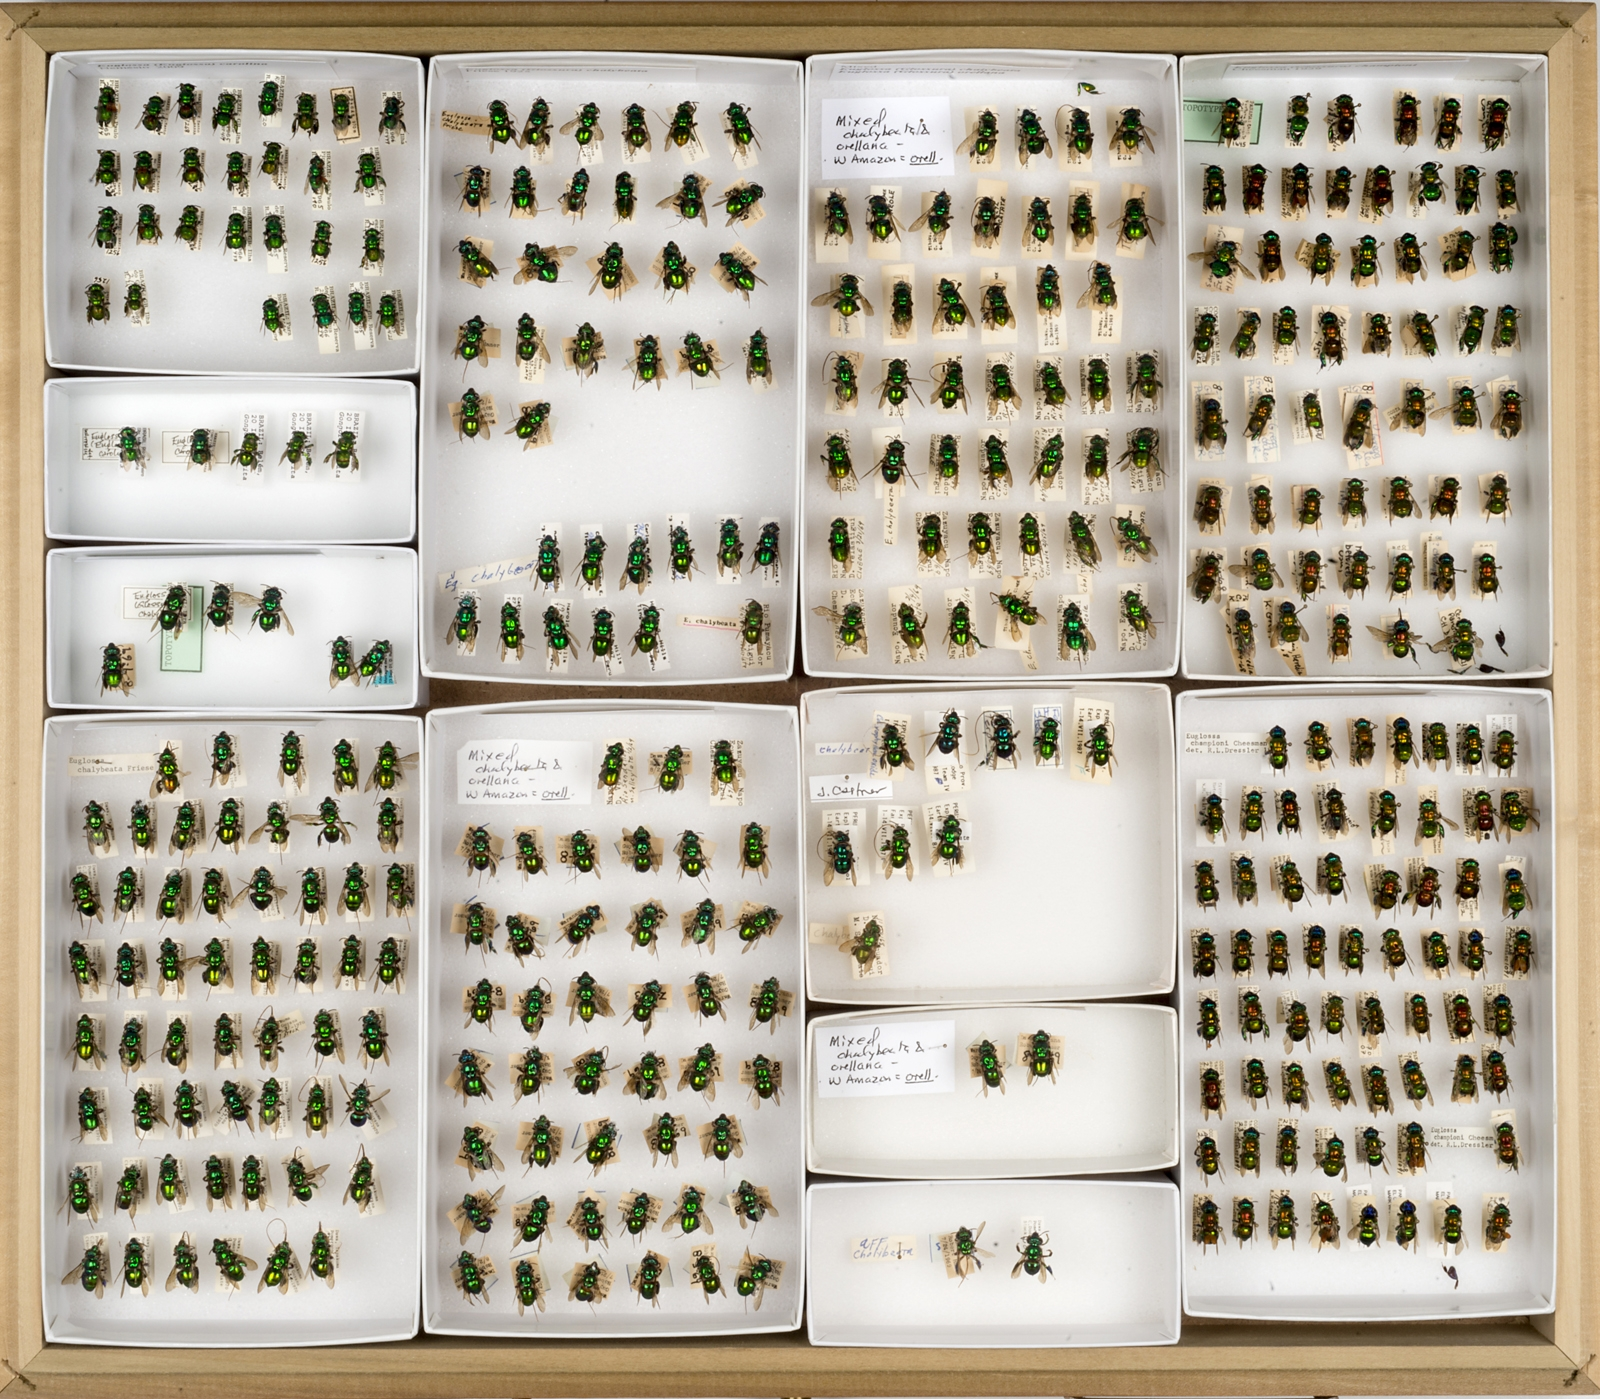 Bee Collection, Euglossine Bees, Orchid Bees, 2015